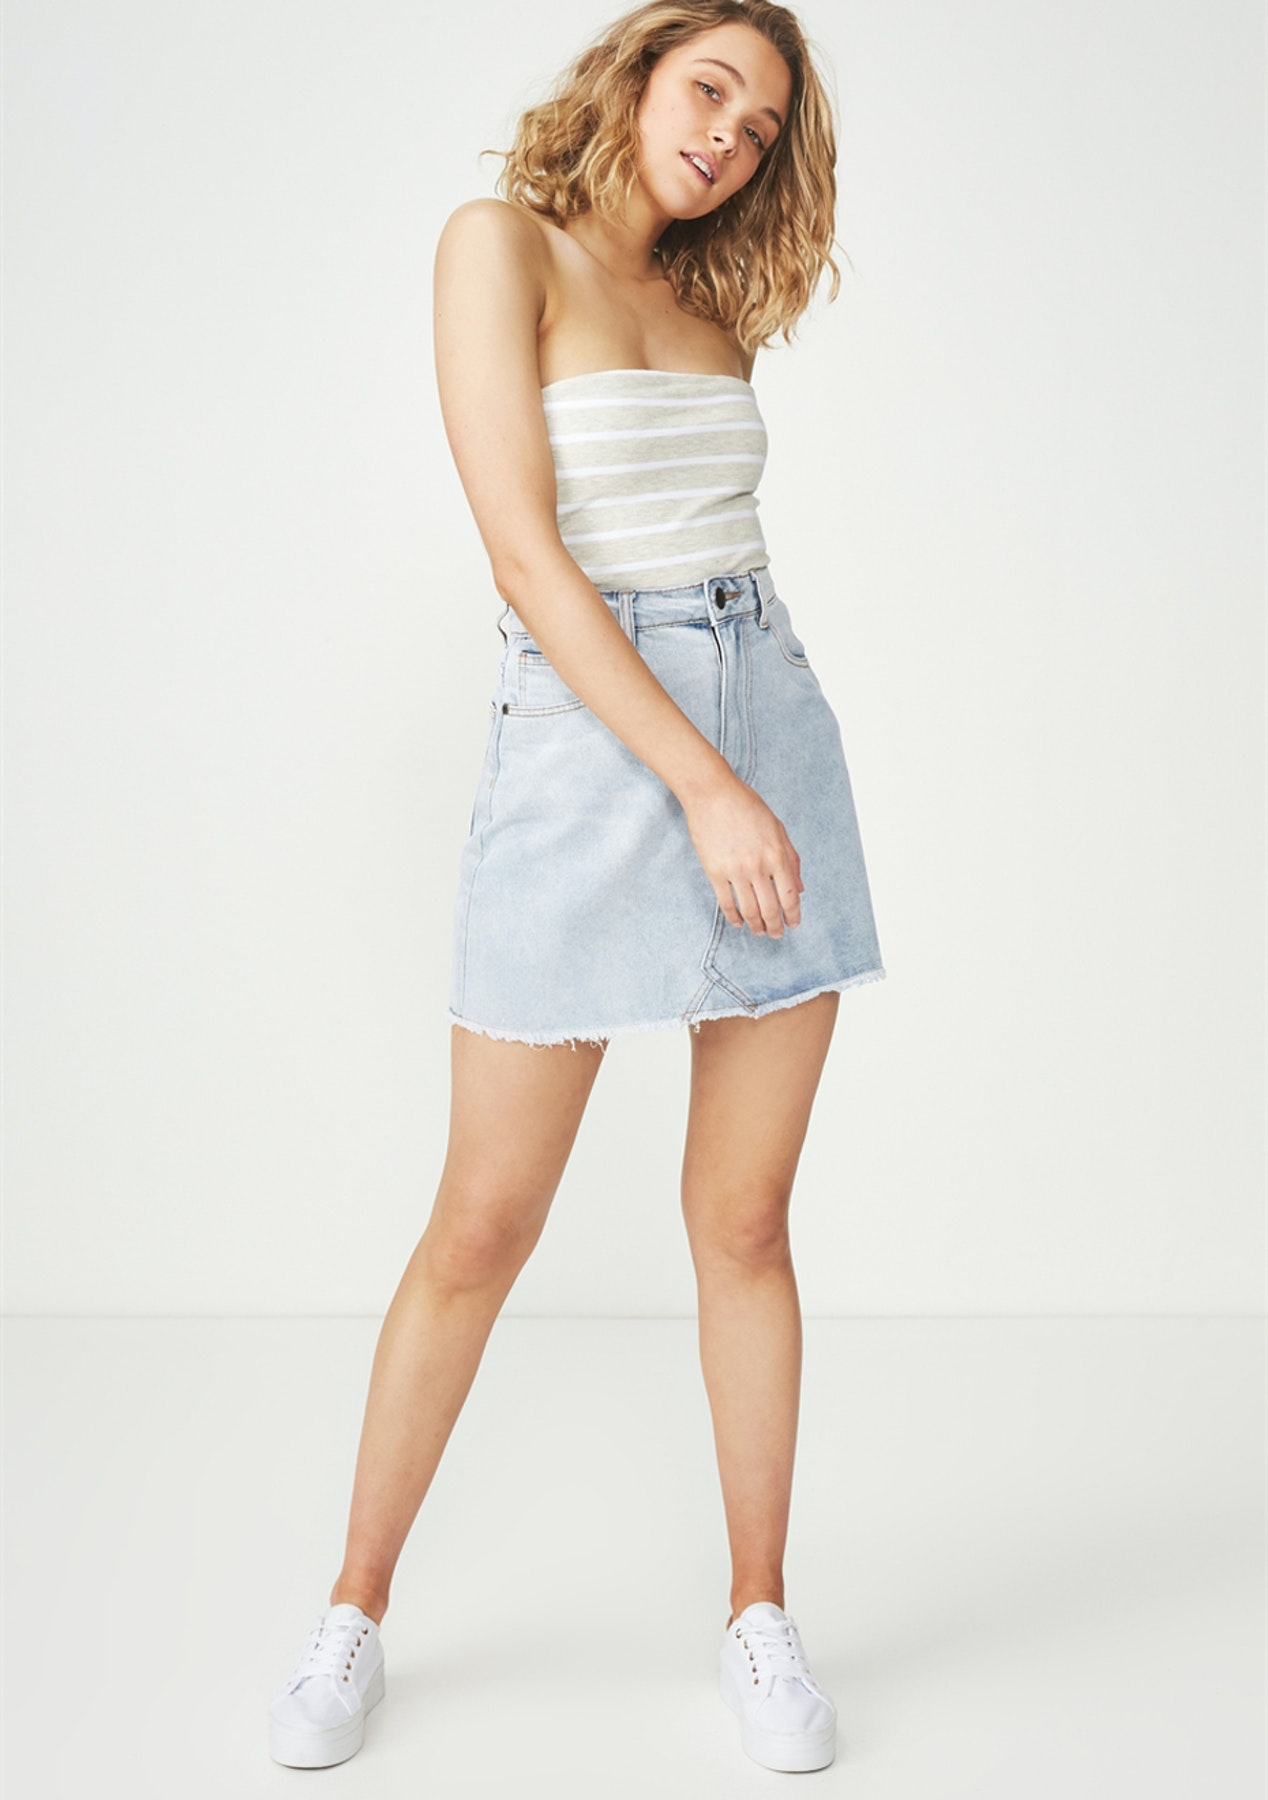 aad194df55a1f3 Cotton On - Everyday Tube Top/Jack Stripe Oat Marle/White - All $7 Basics -  Onceit